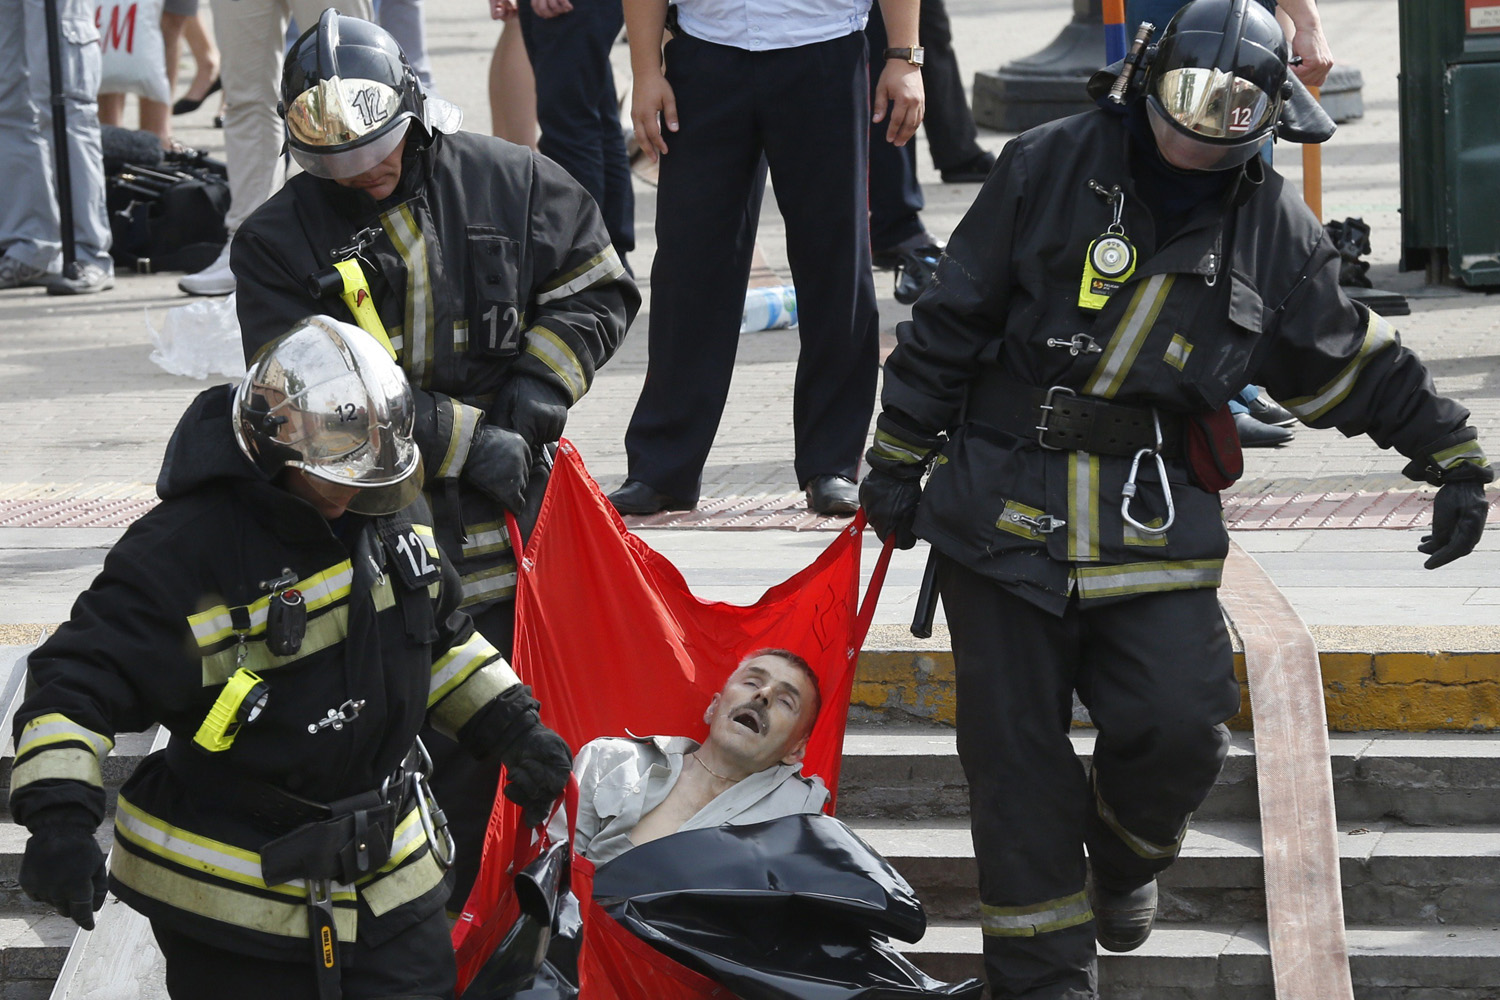 Jul. 14, 2014. Rescuers carry a passenger injured as several subway cars derailed in Moscow. At least twelve people died and scores were taken to hospital today after a train derailed in the Moscow metro in a tunnel between Park Pobedy and Slavyansky Bulvar stations, in the west of Moscow.